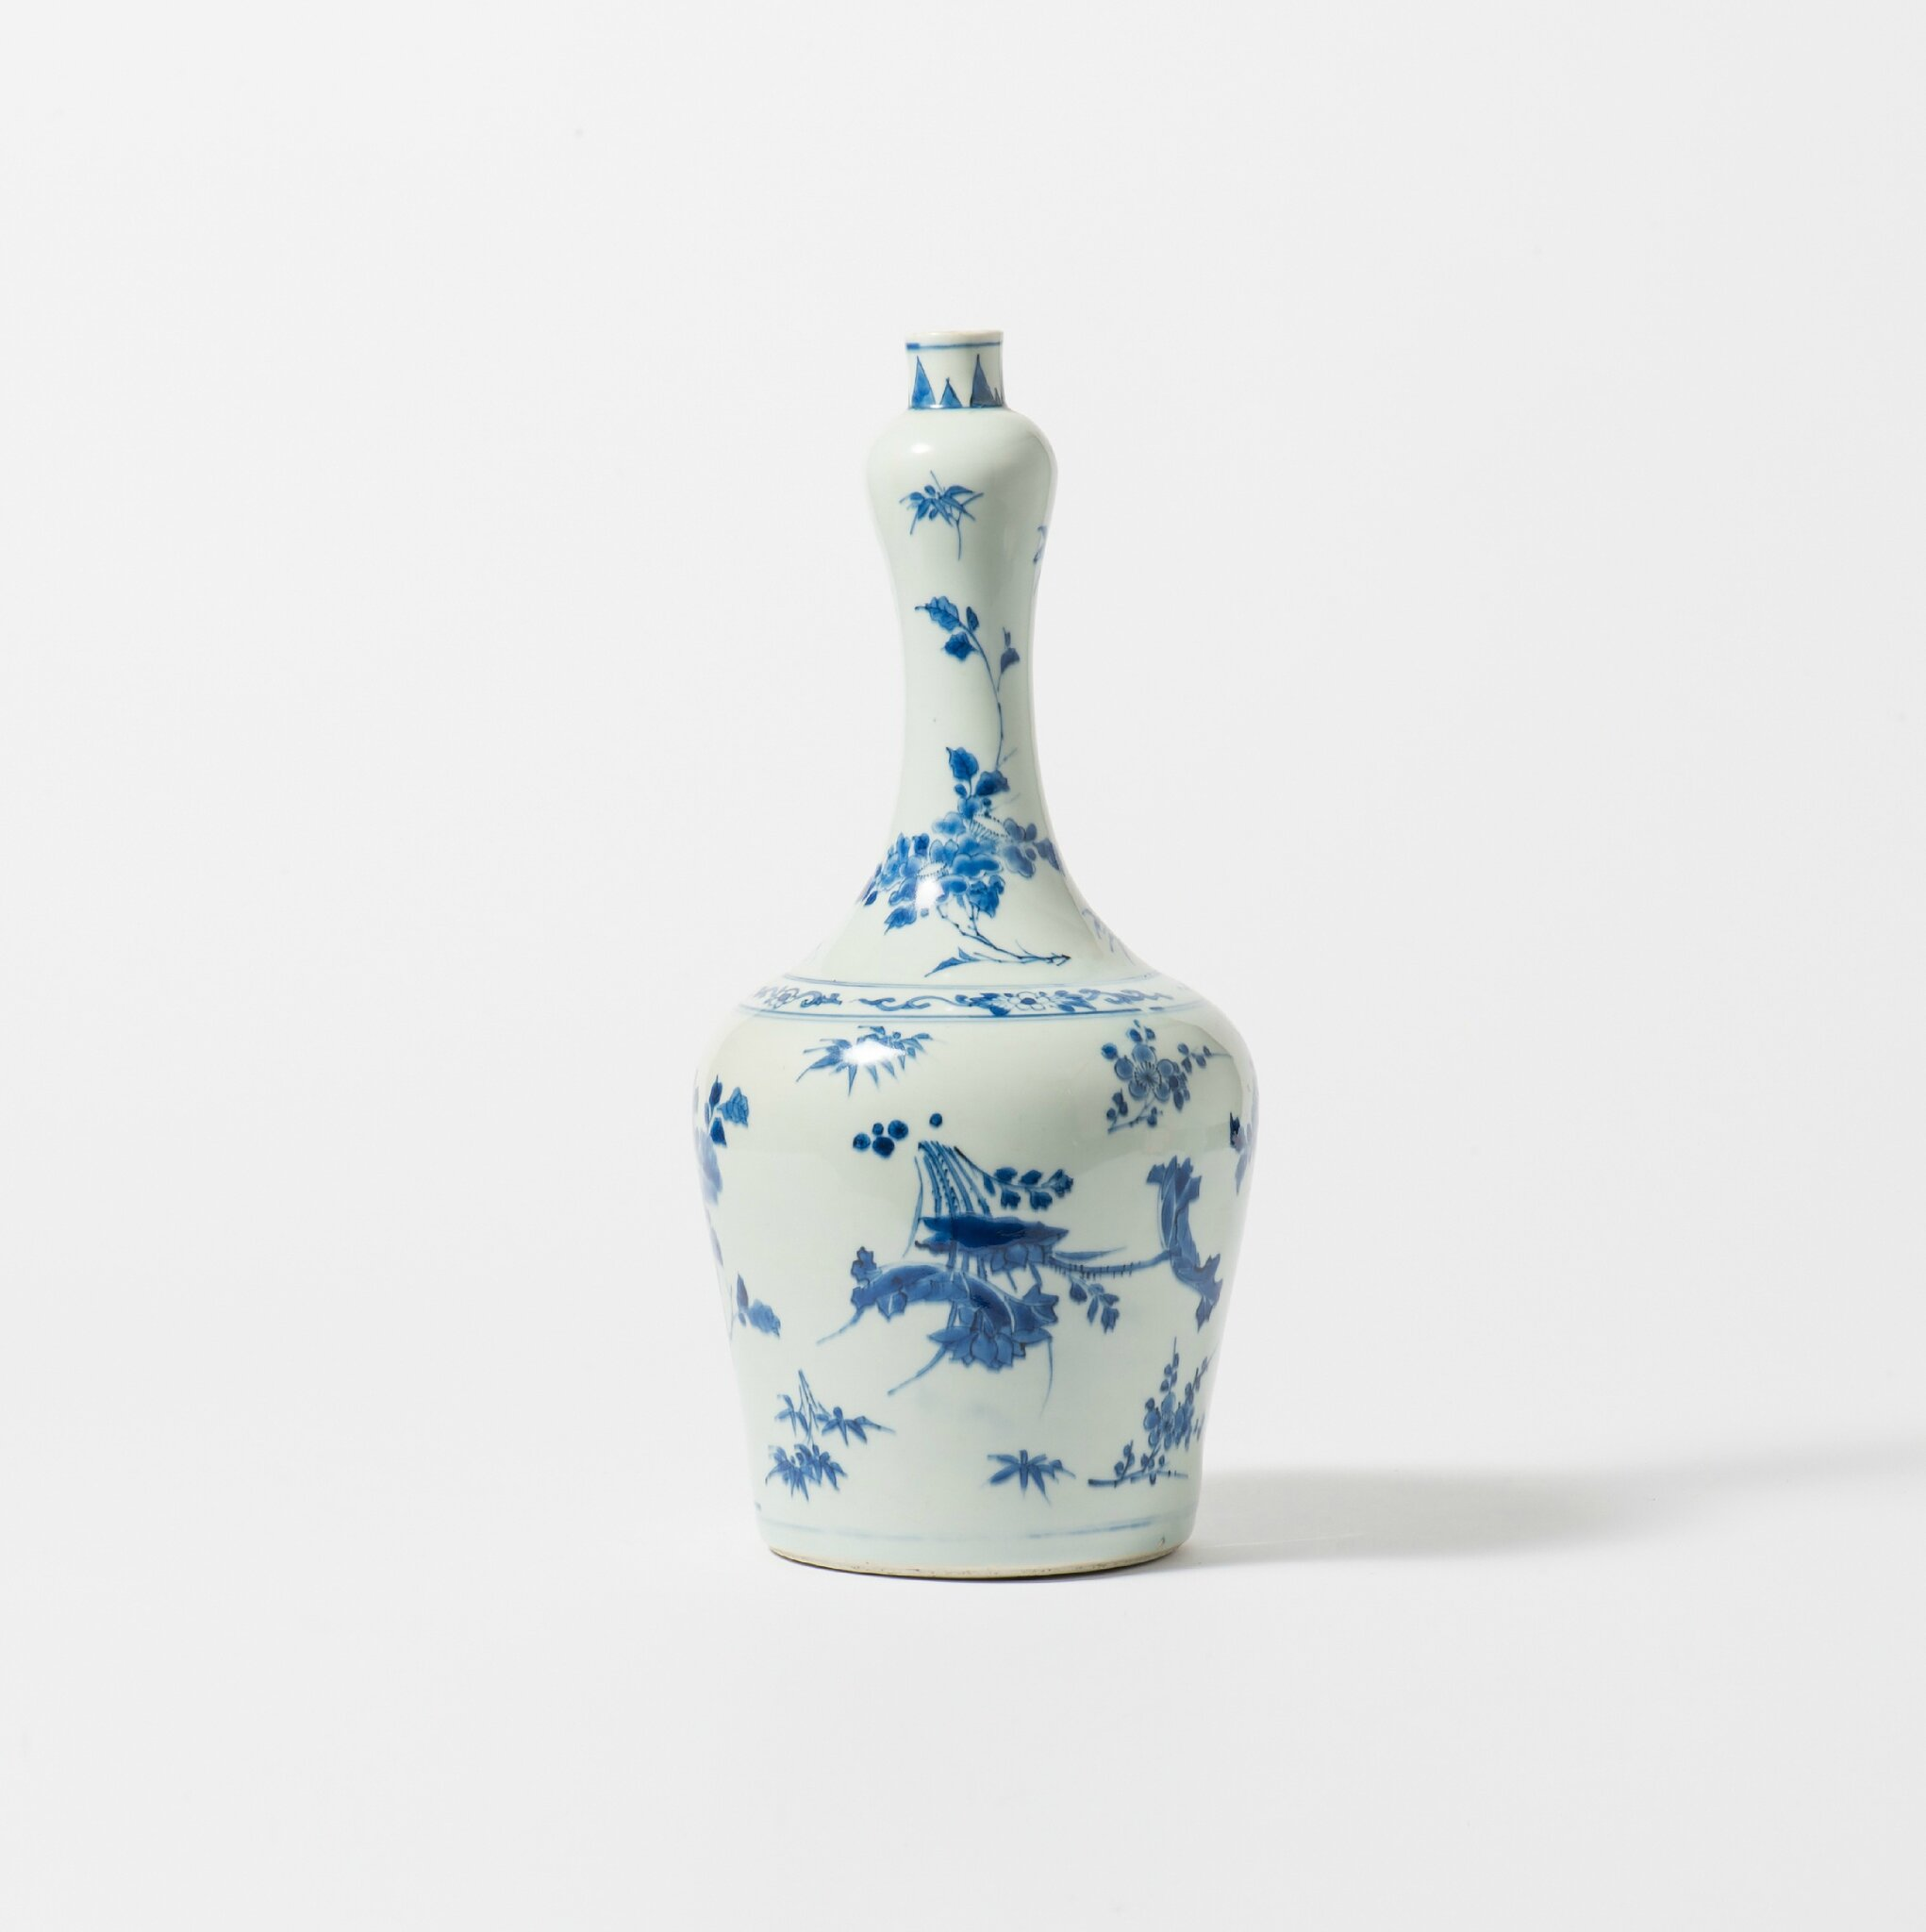 A blue and white vase, Chongzhen period (1627-1644)